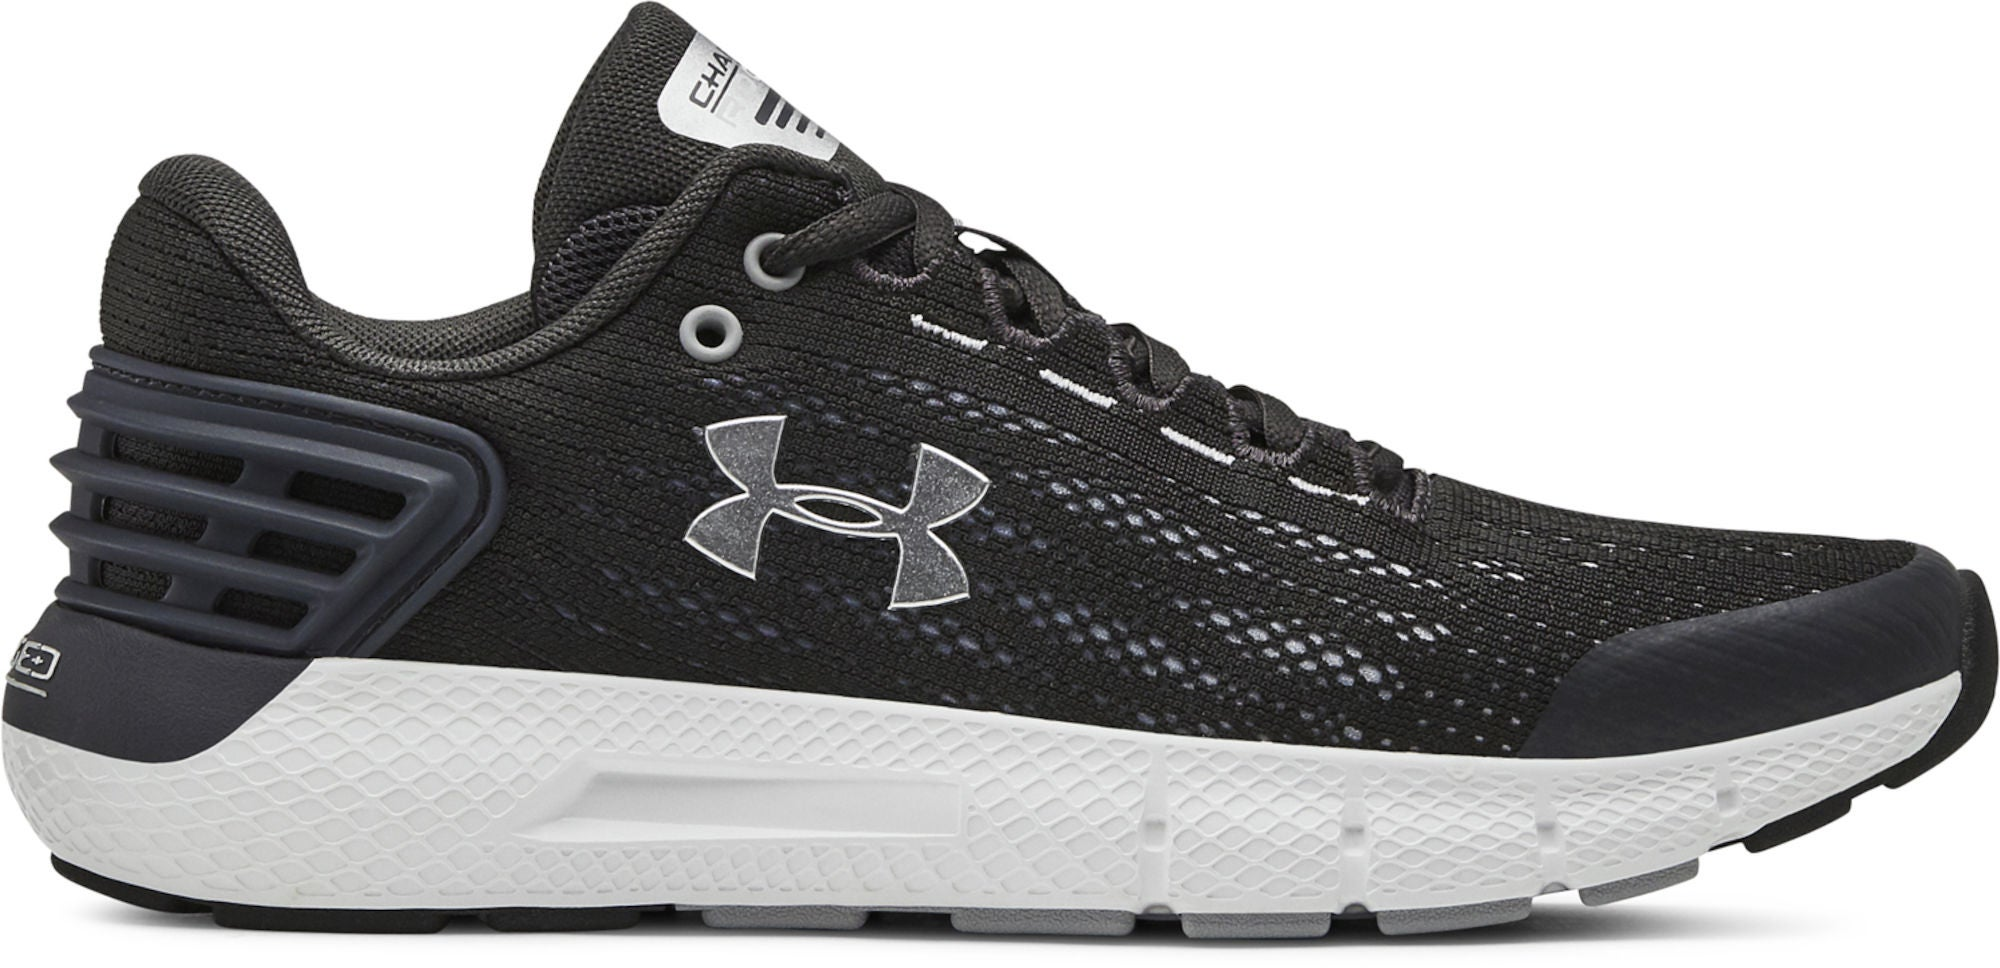 Under Armour BGS Charged Rogue Träningsskor, White 36,5